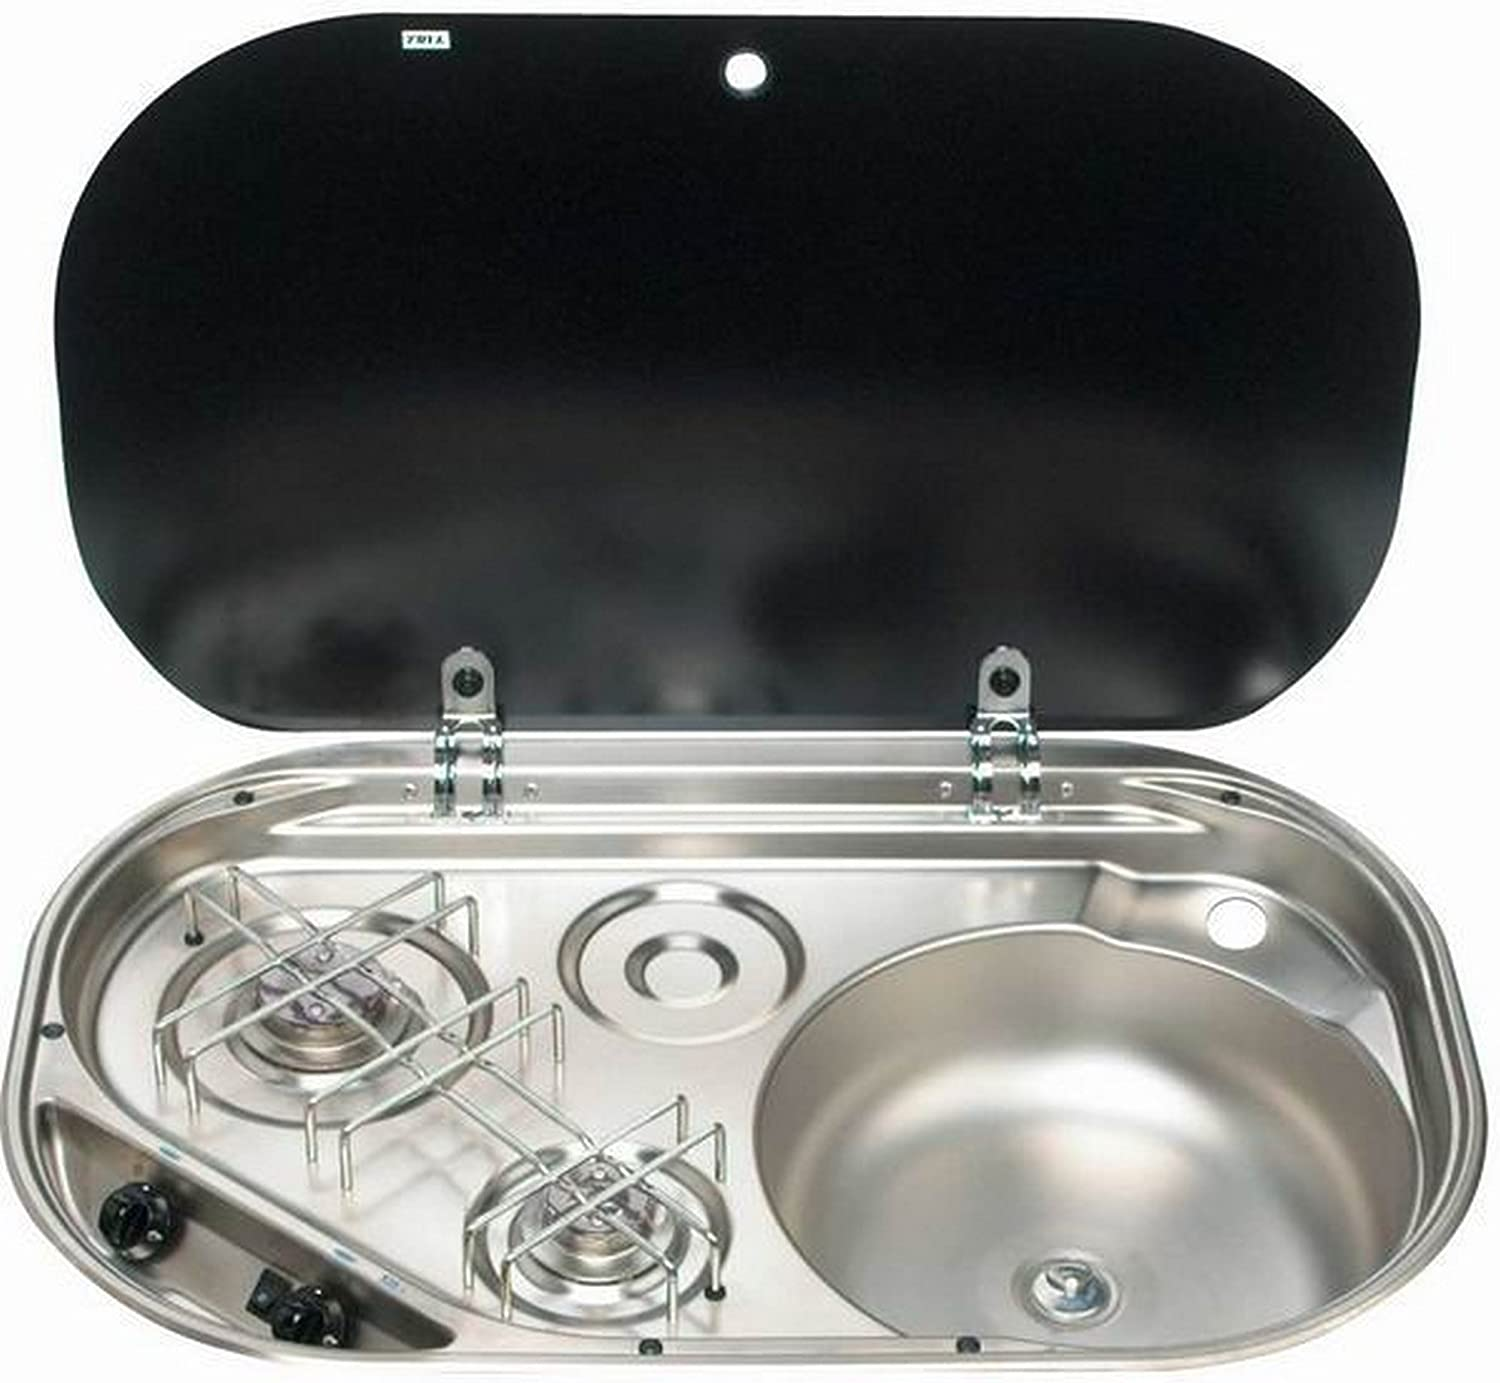 Smev Sink/Hob Combination Unit With Glass Lid